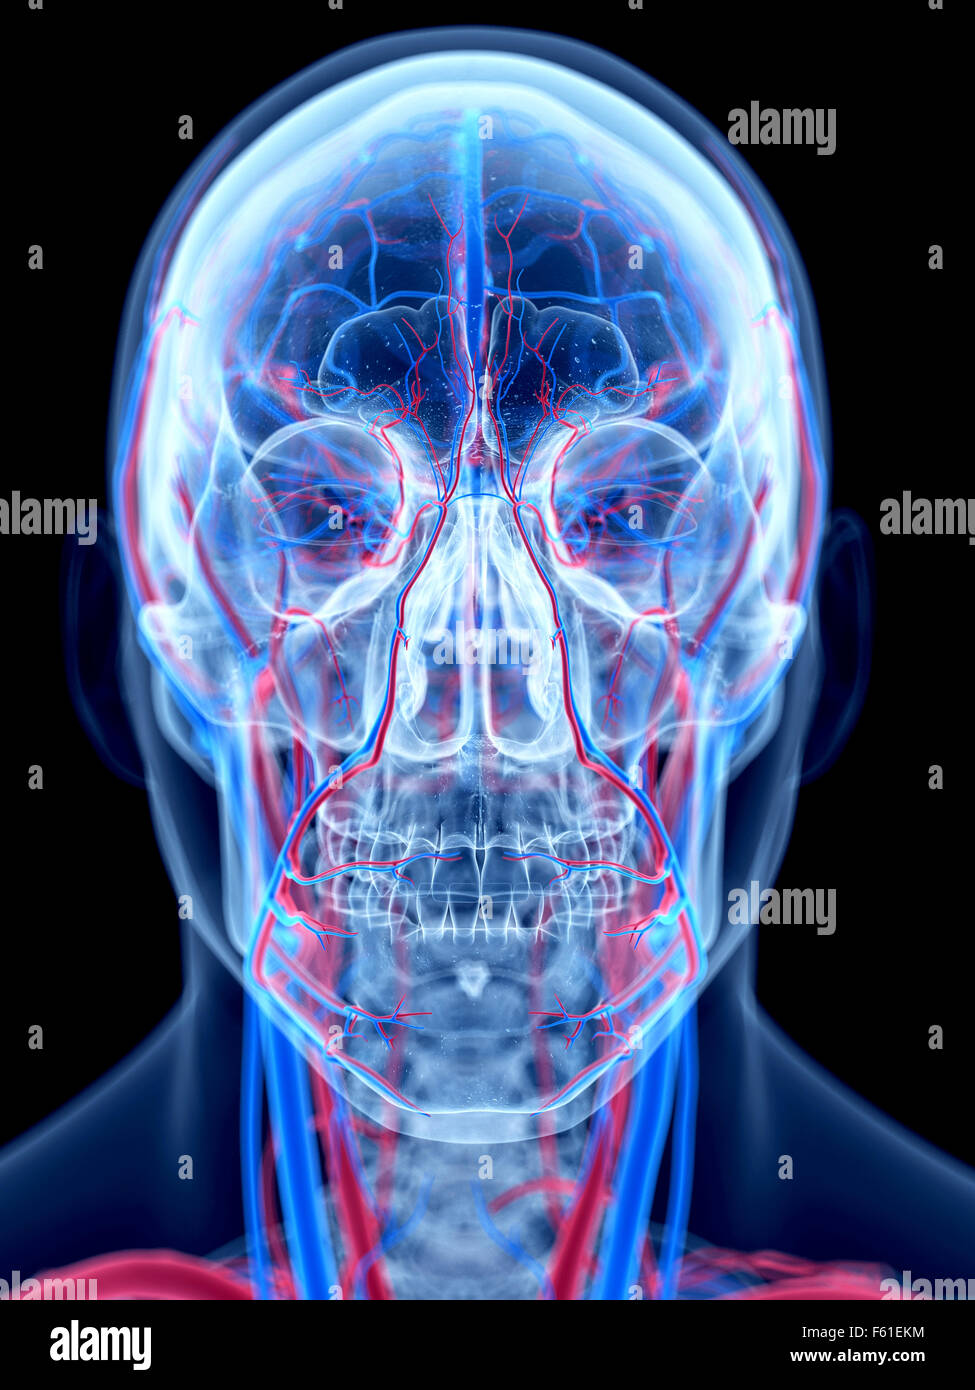 Neck Artery Stock Photos & Neck Artery Stock Images - Alamy